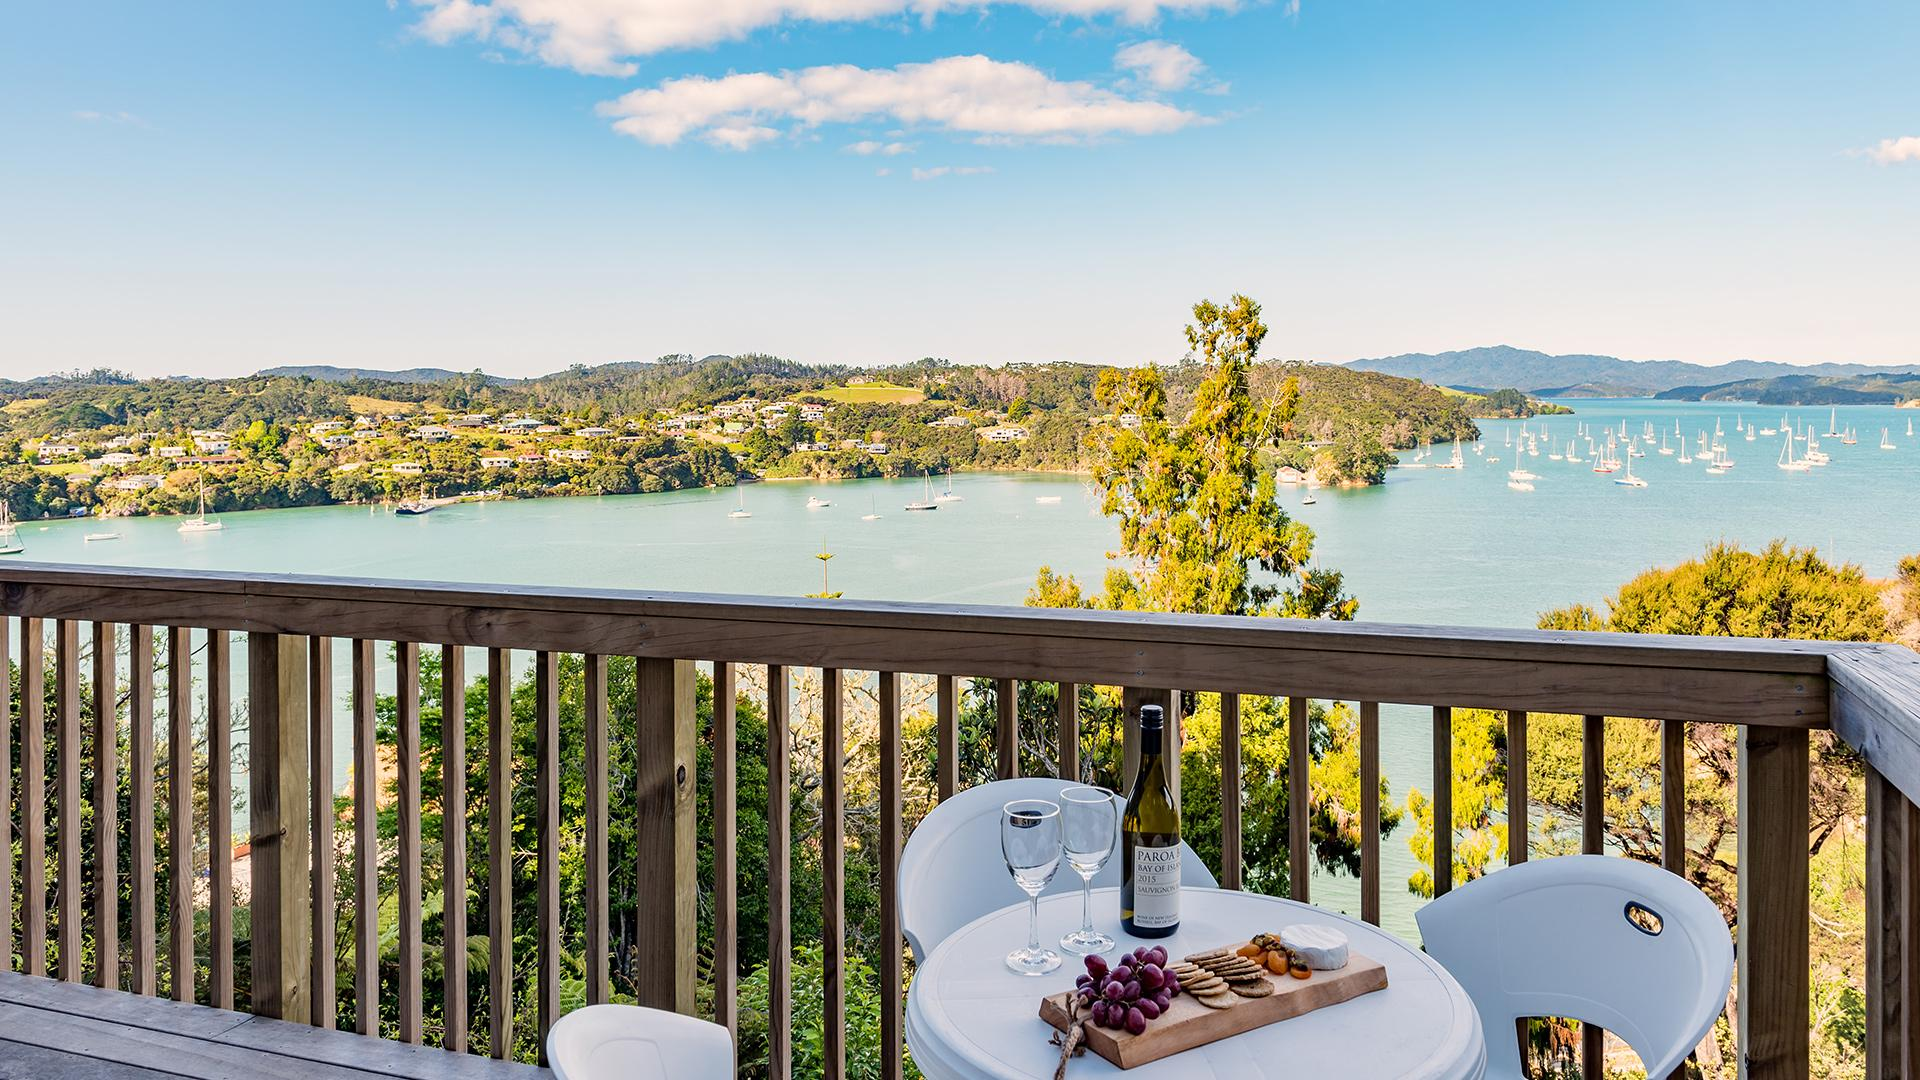 One-Bedroom Apartment Opua  image 1 at Marina Cove Boutique Luxury Accommodation by null, Northland, New Zealand